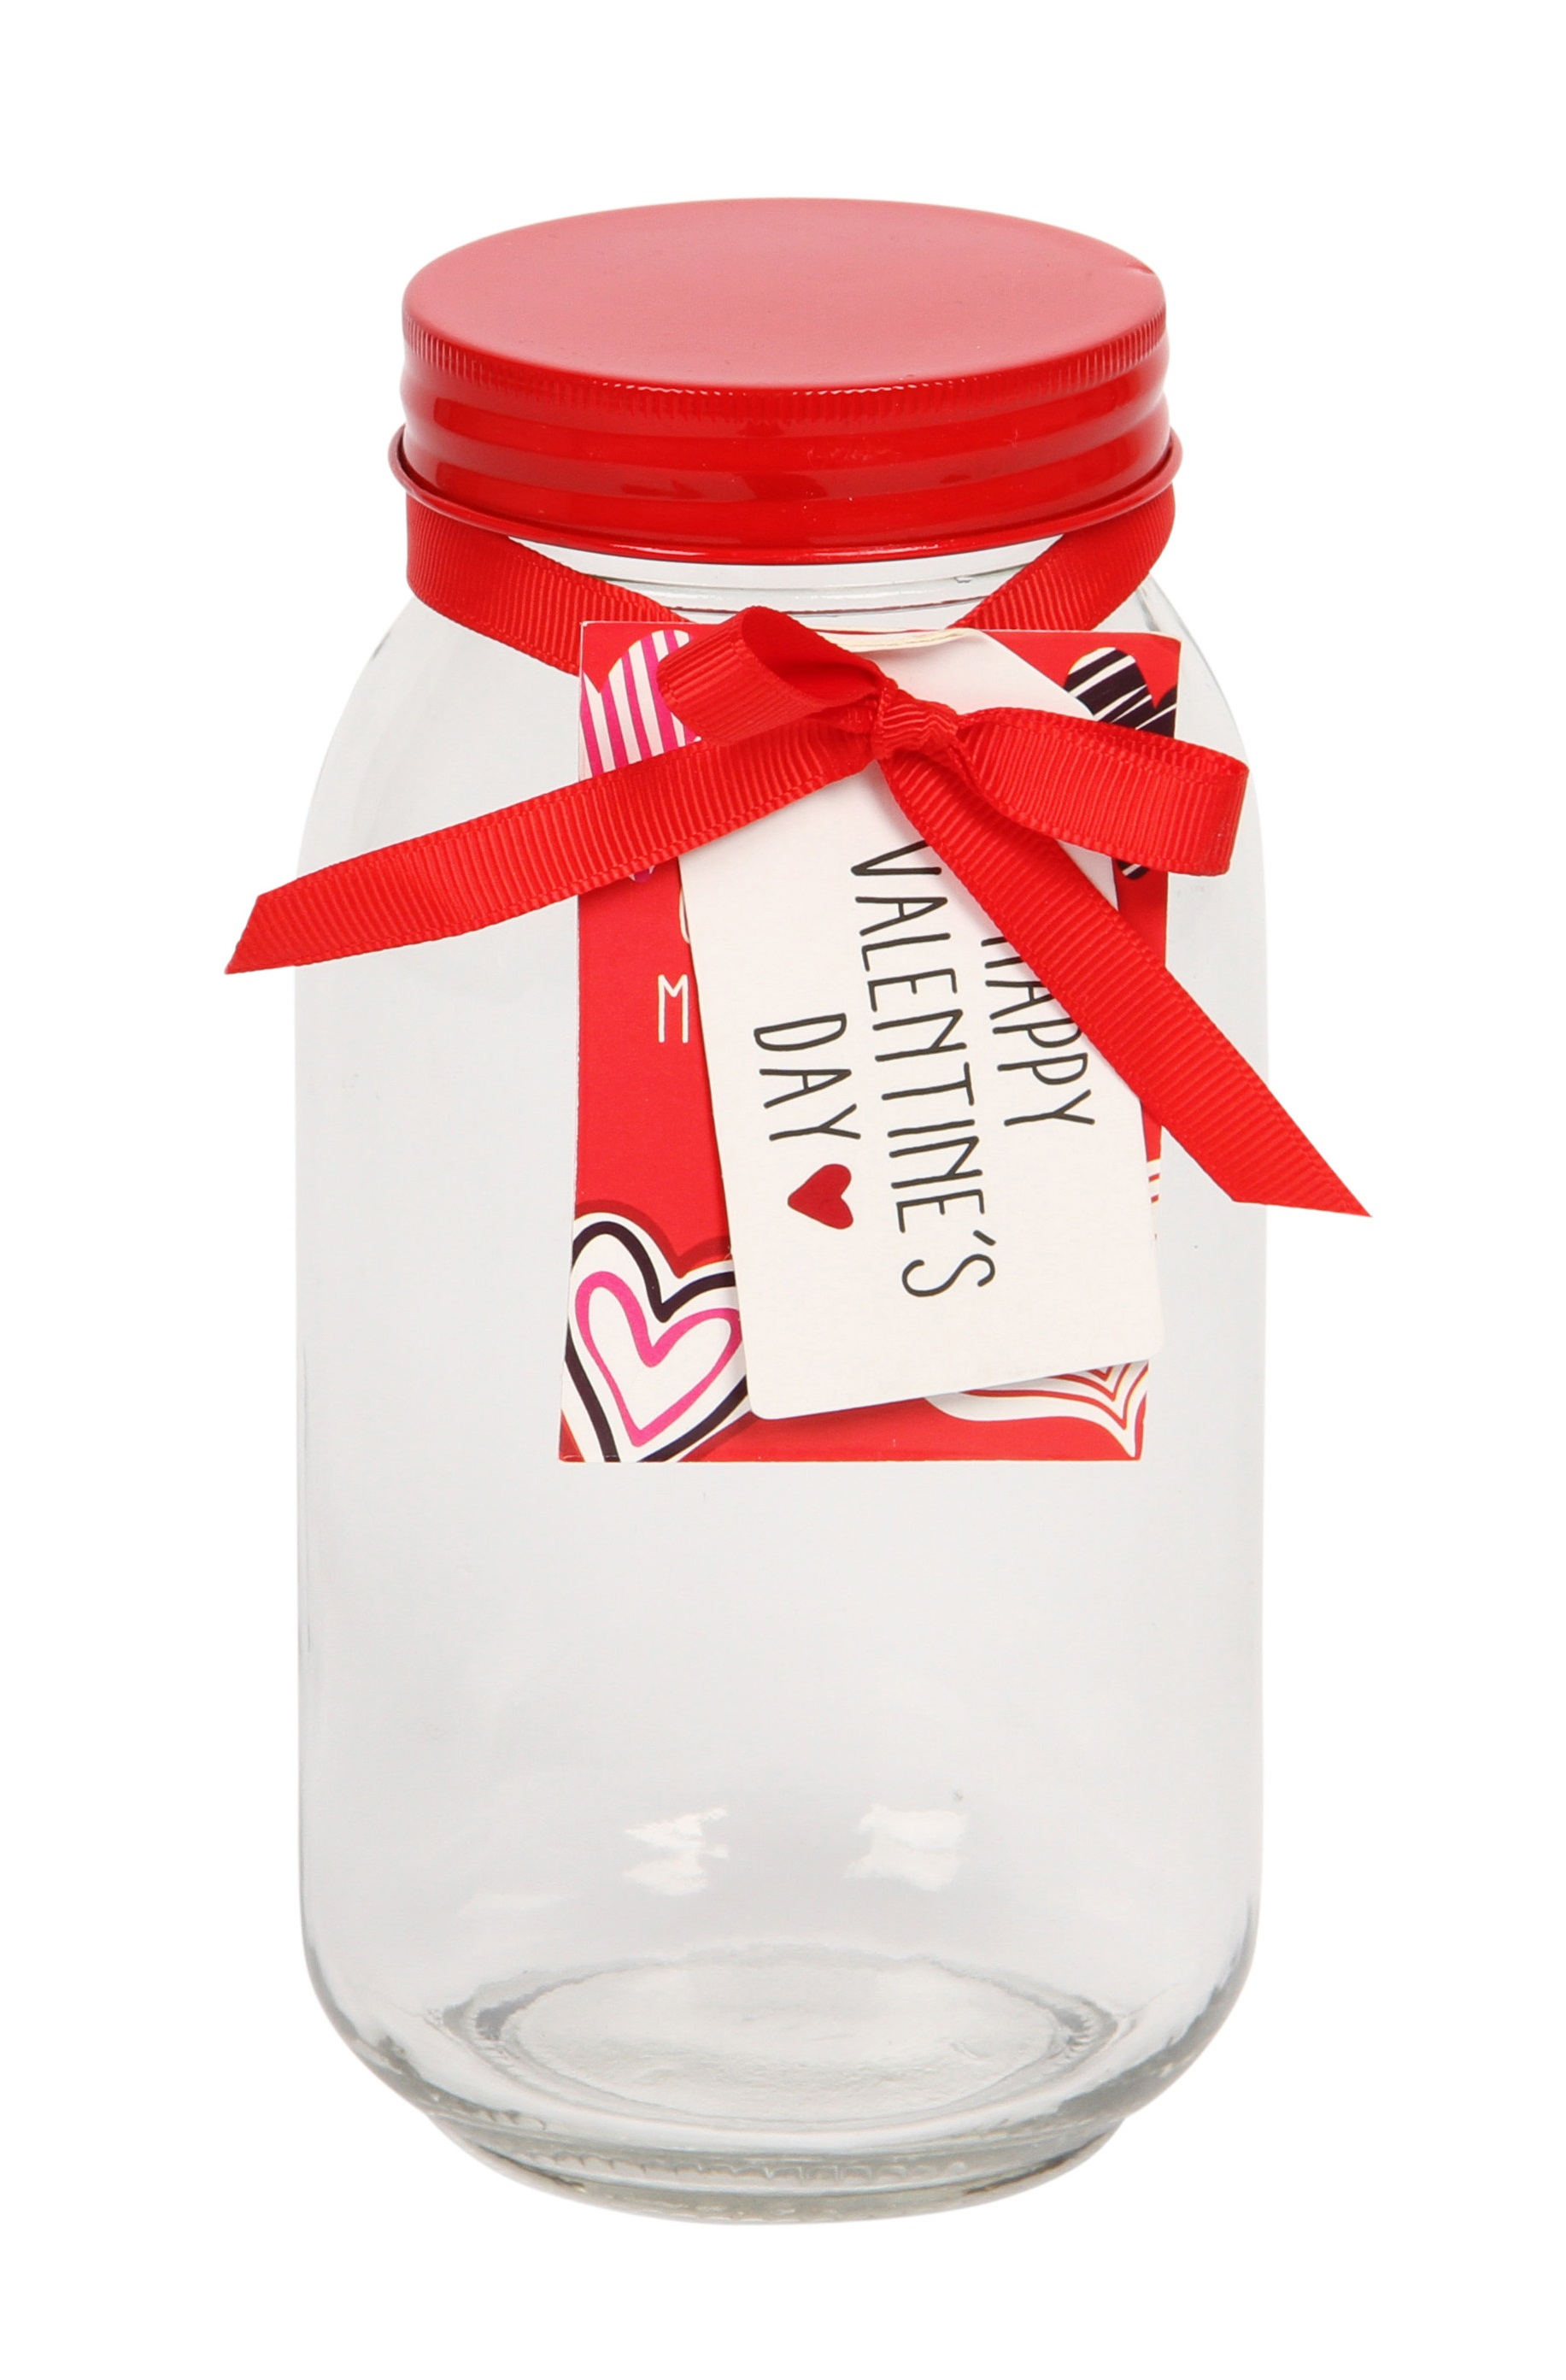 Large Valentines storage jar from Paperchase